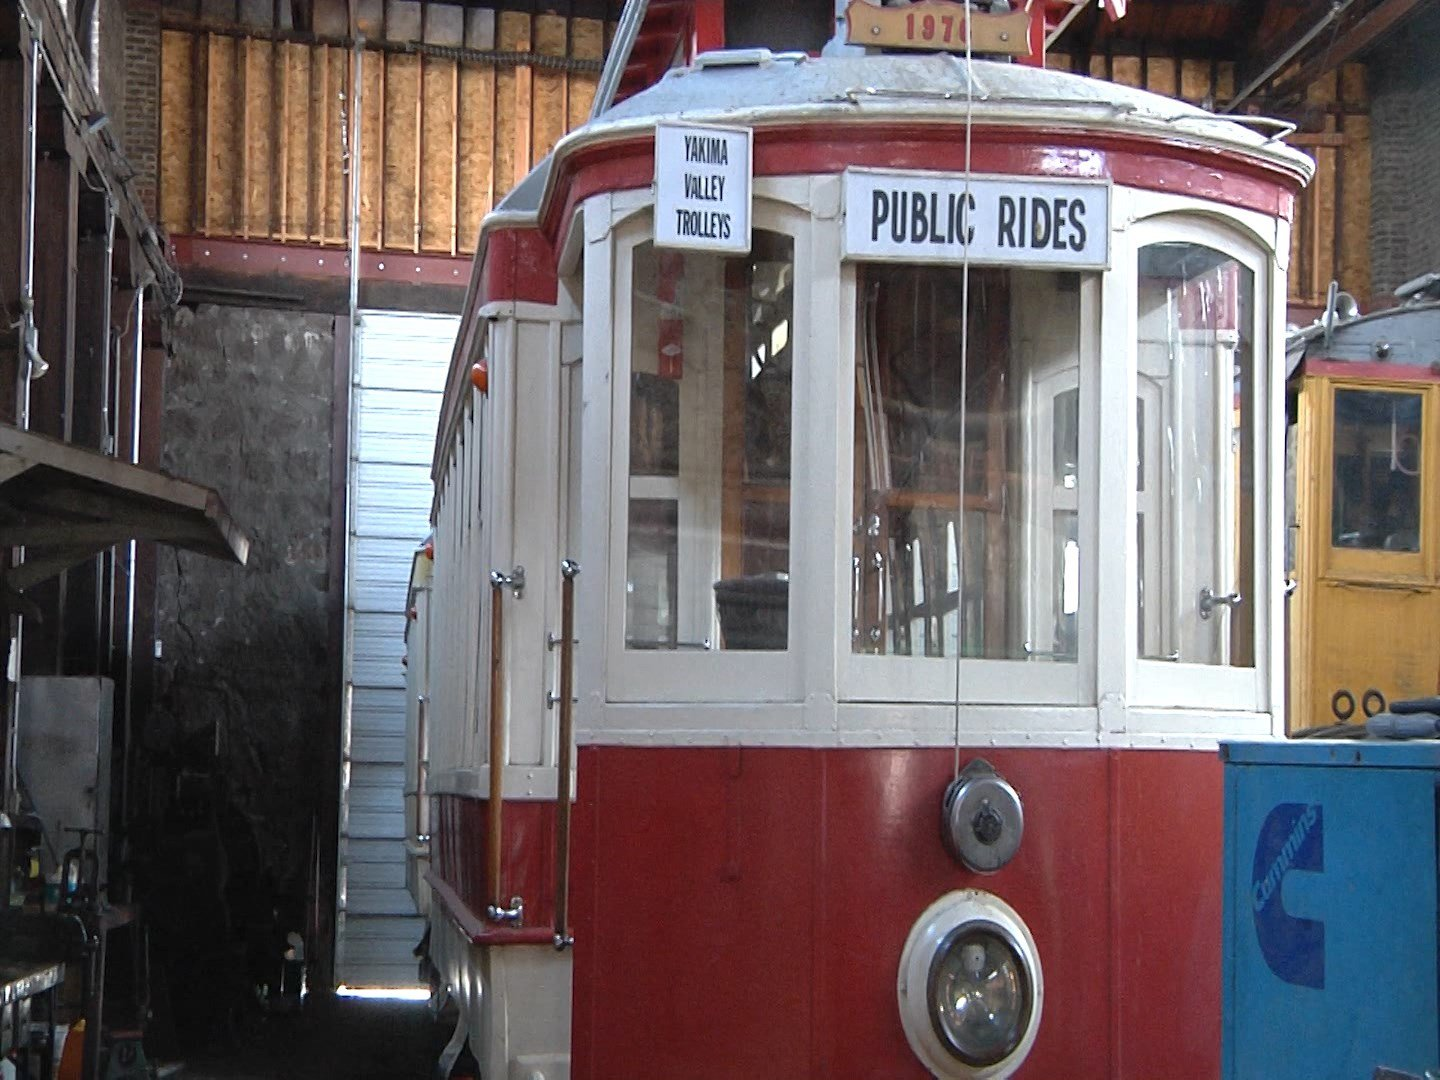 Yakima Valley Trolley (File Photo)